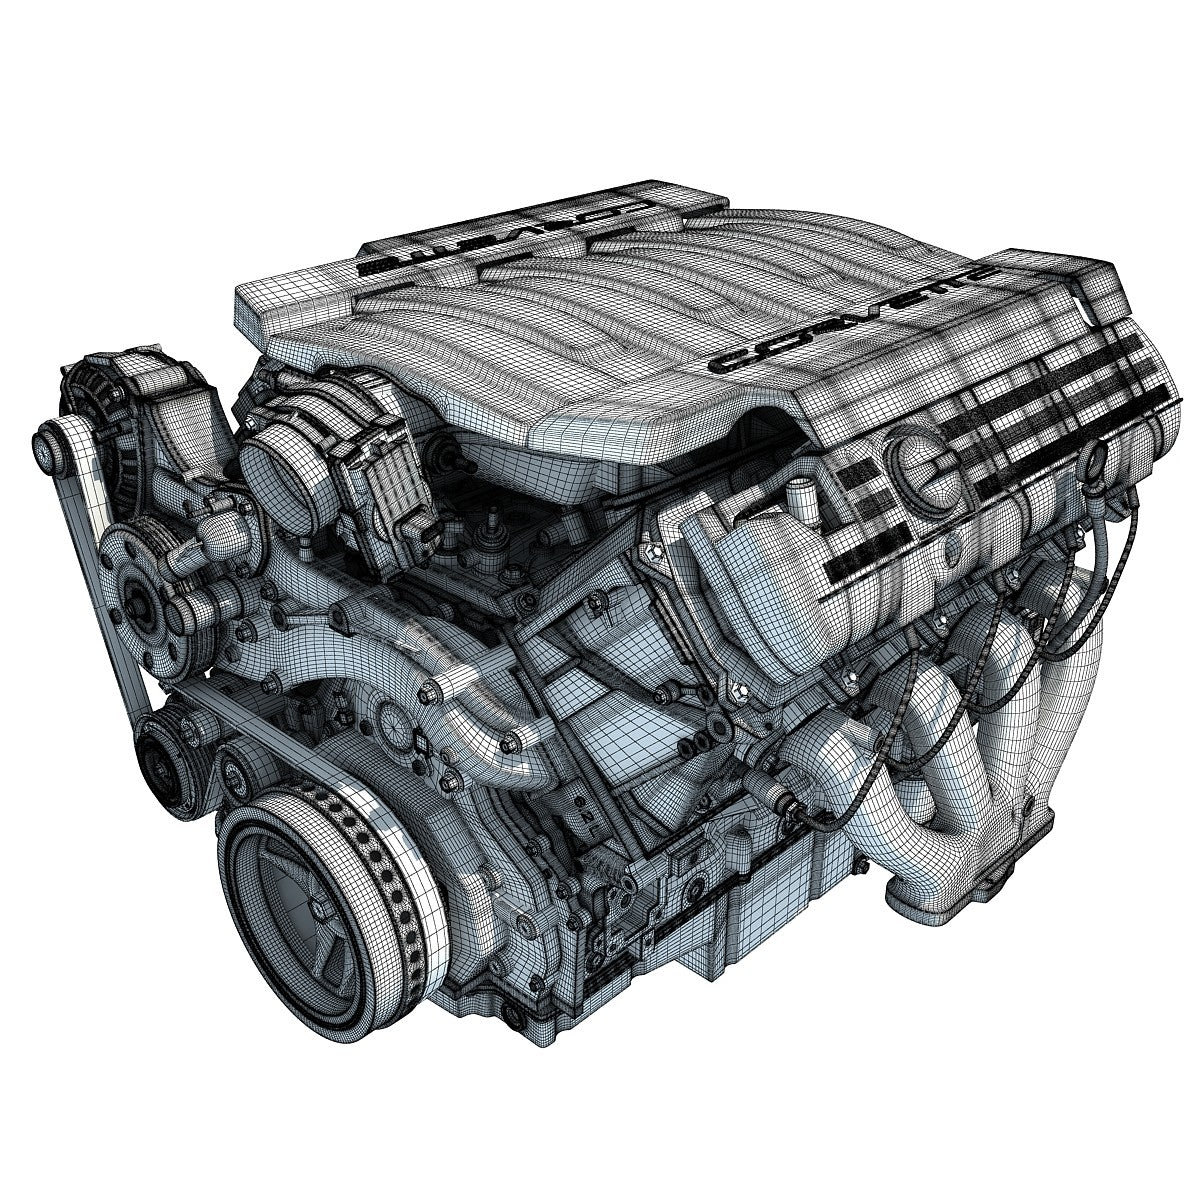 3D Engine Chevrolet Model